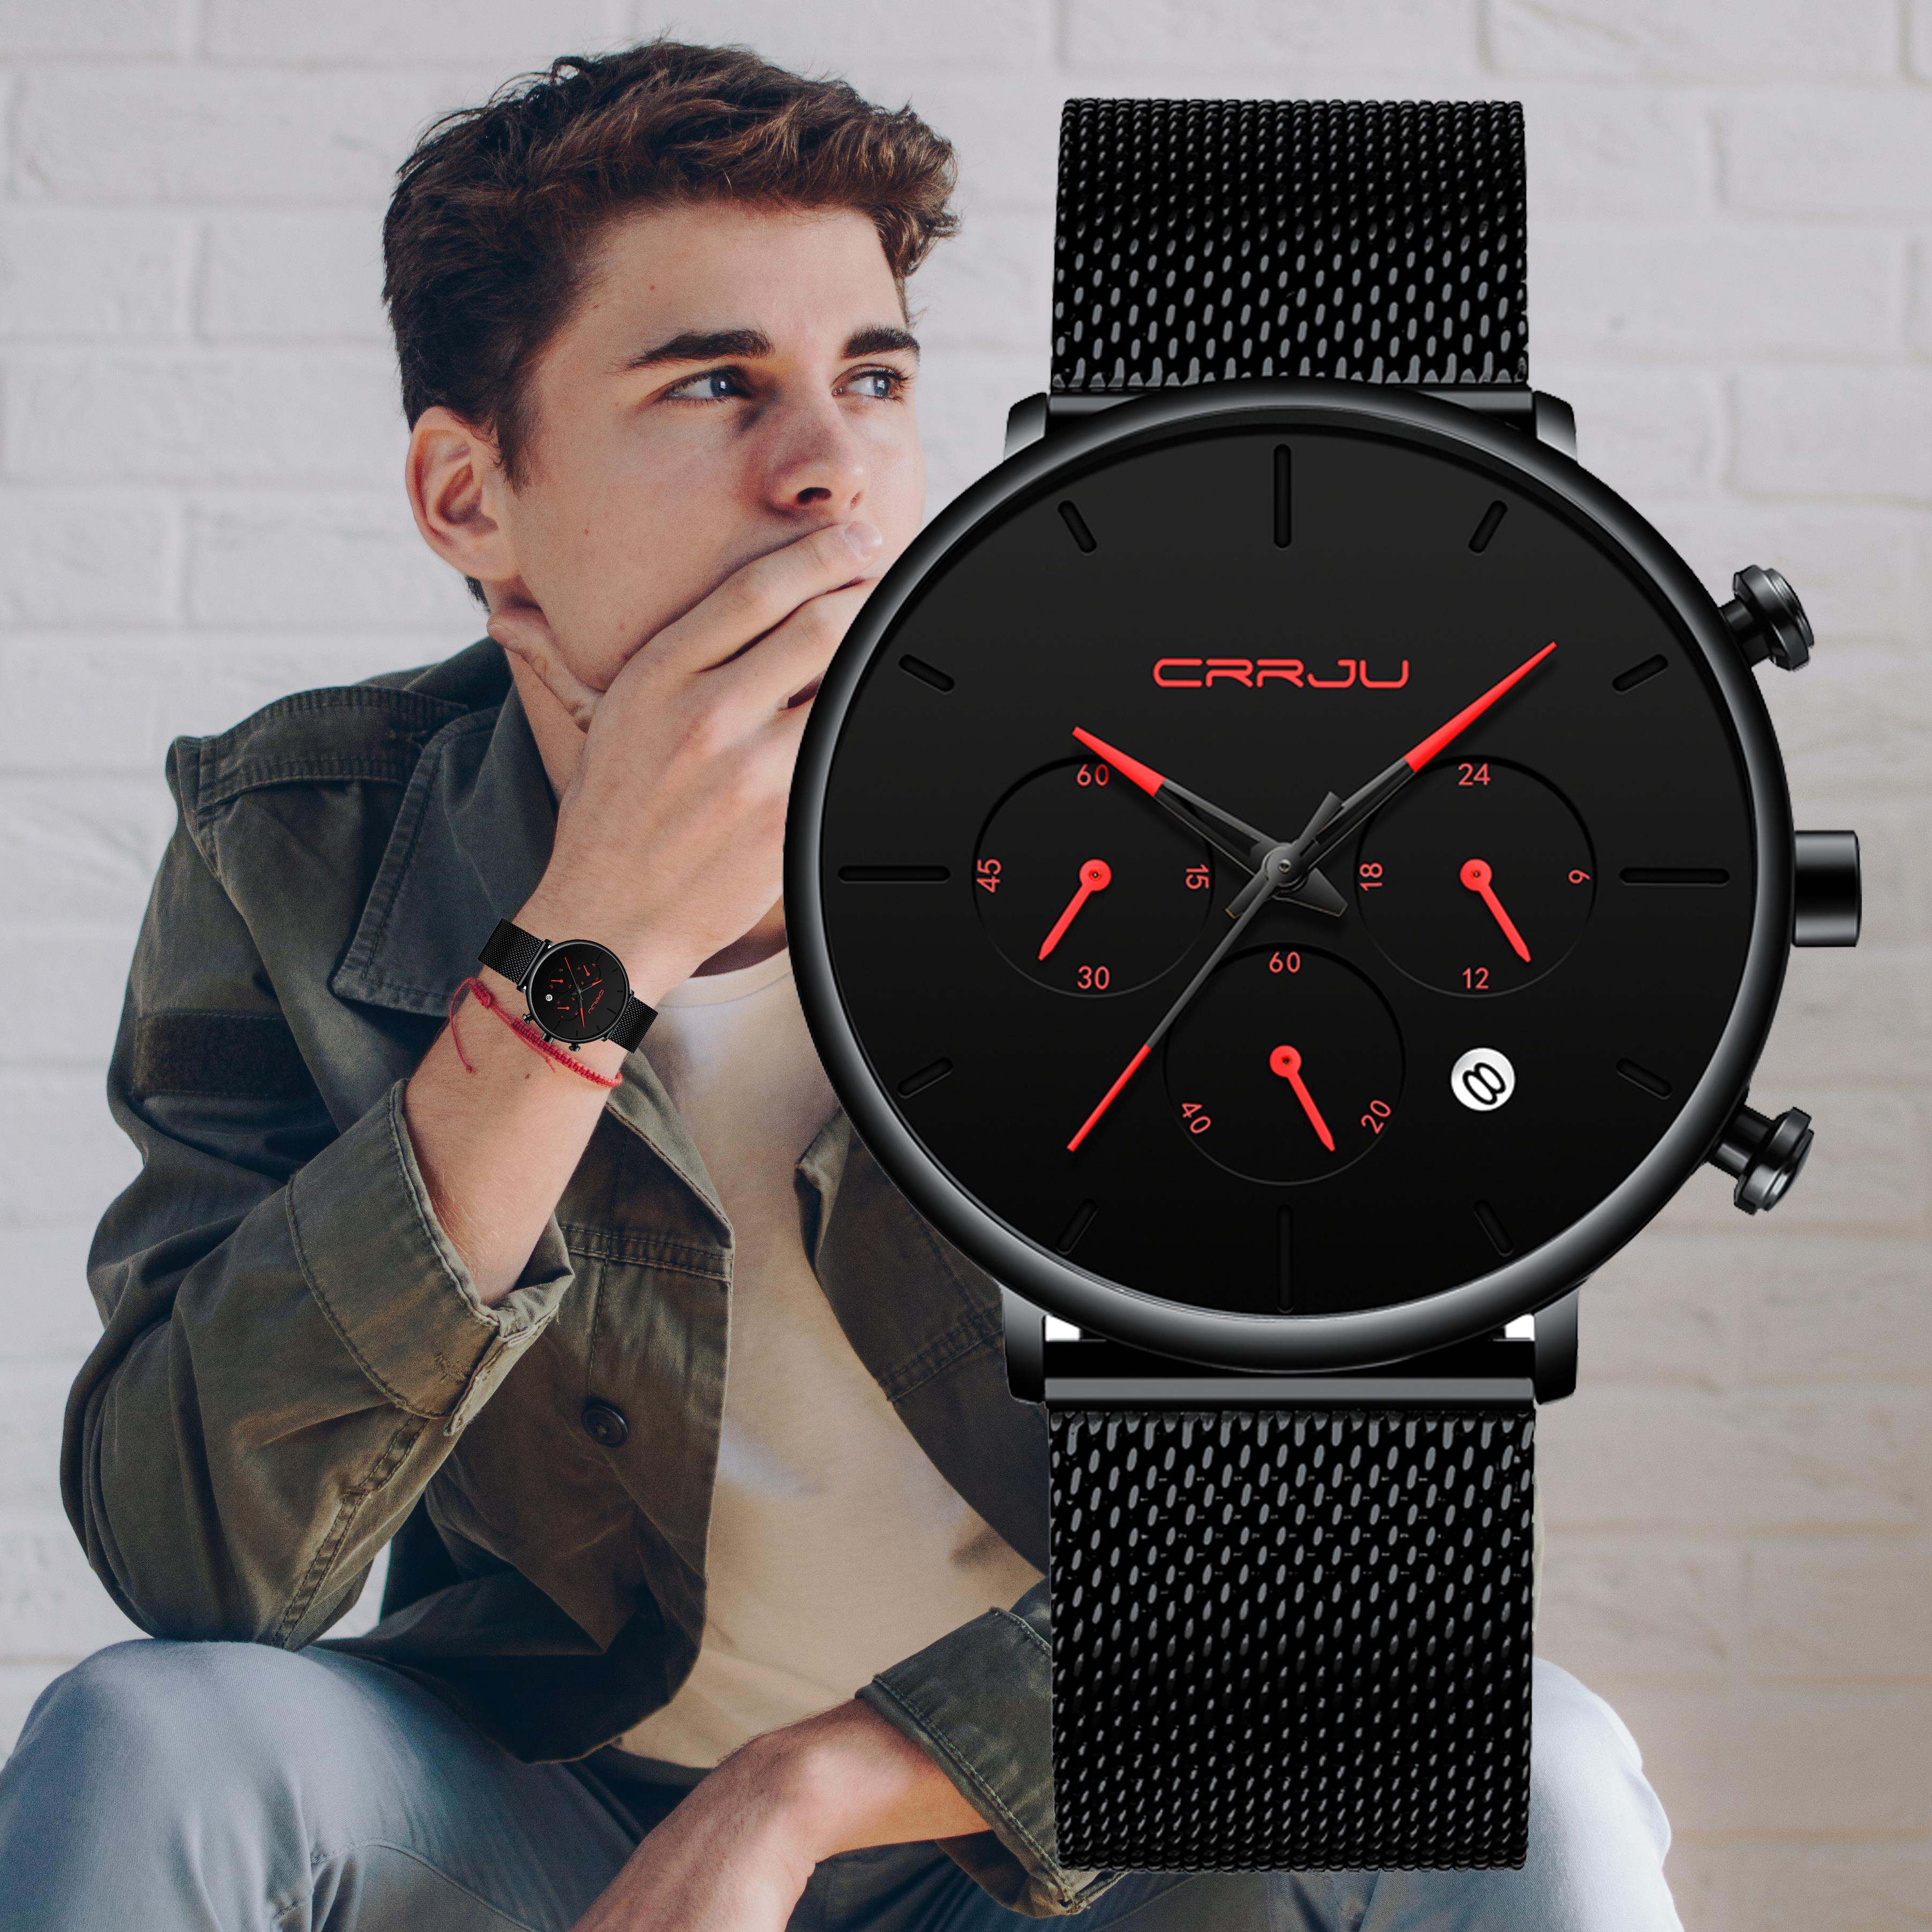 Image 5 - Relogio Masculino CRRJU Mens Business Dress Watches Luxury Casual Waterproof Sport Watch Men 3 Sub Dial Quartz Slim Mesh Watch-in Quartz Watches from Watches